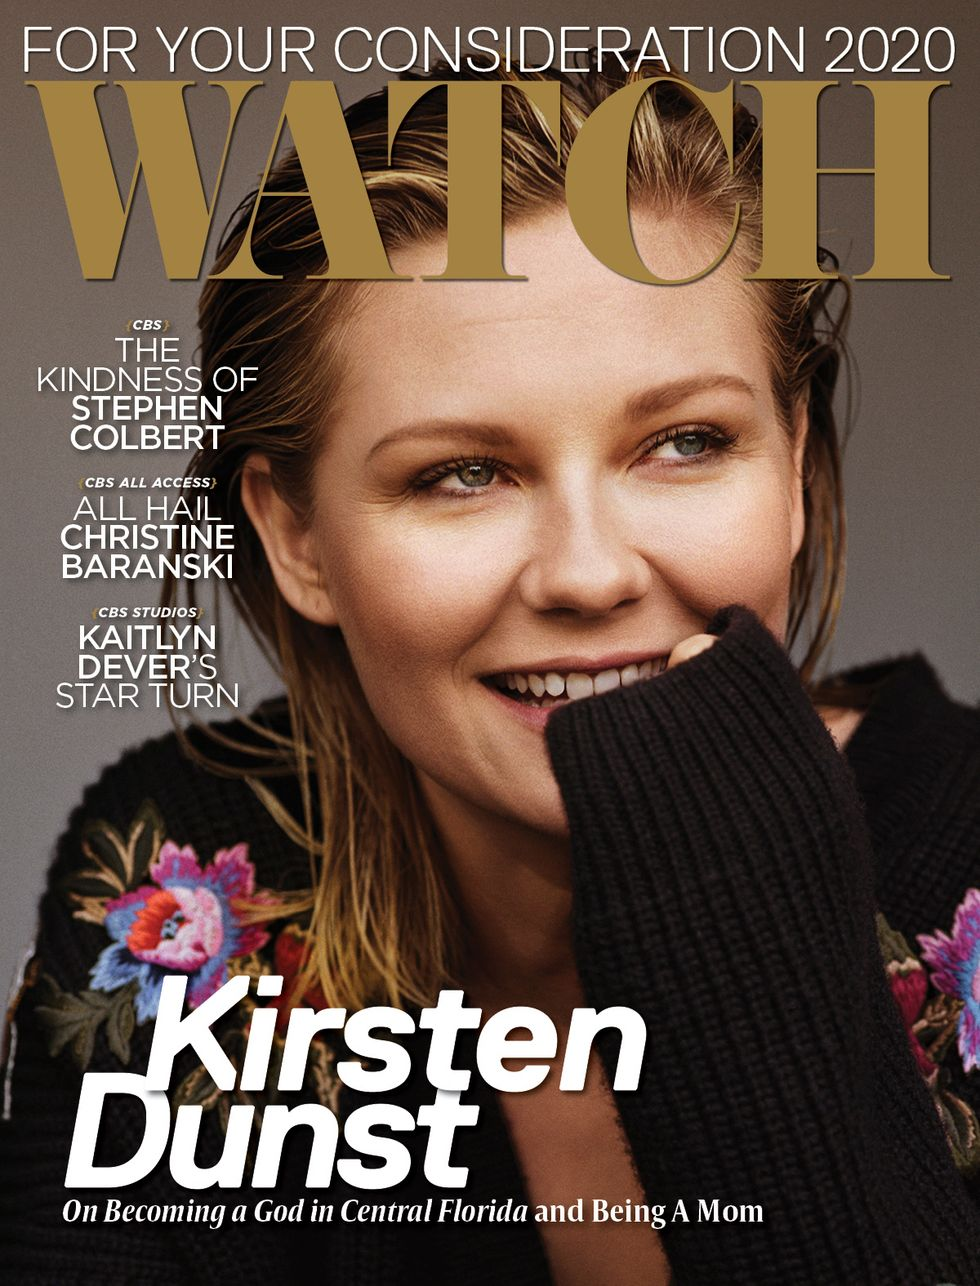 Kirsten Dunst smiling on the cover of a magazine.